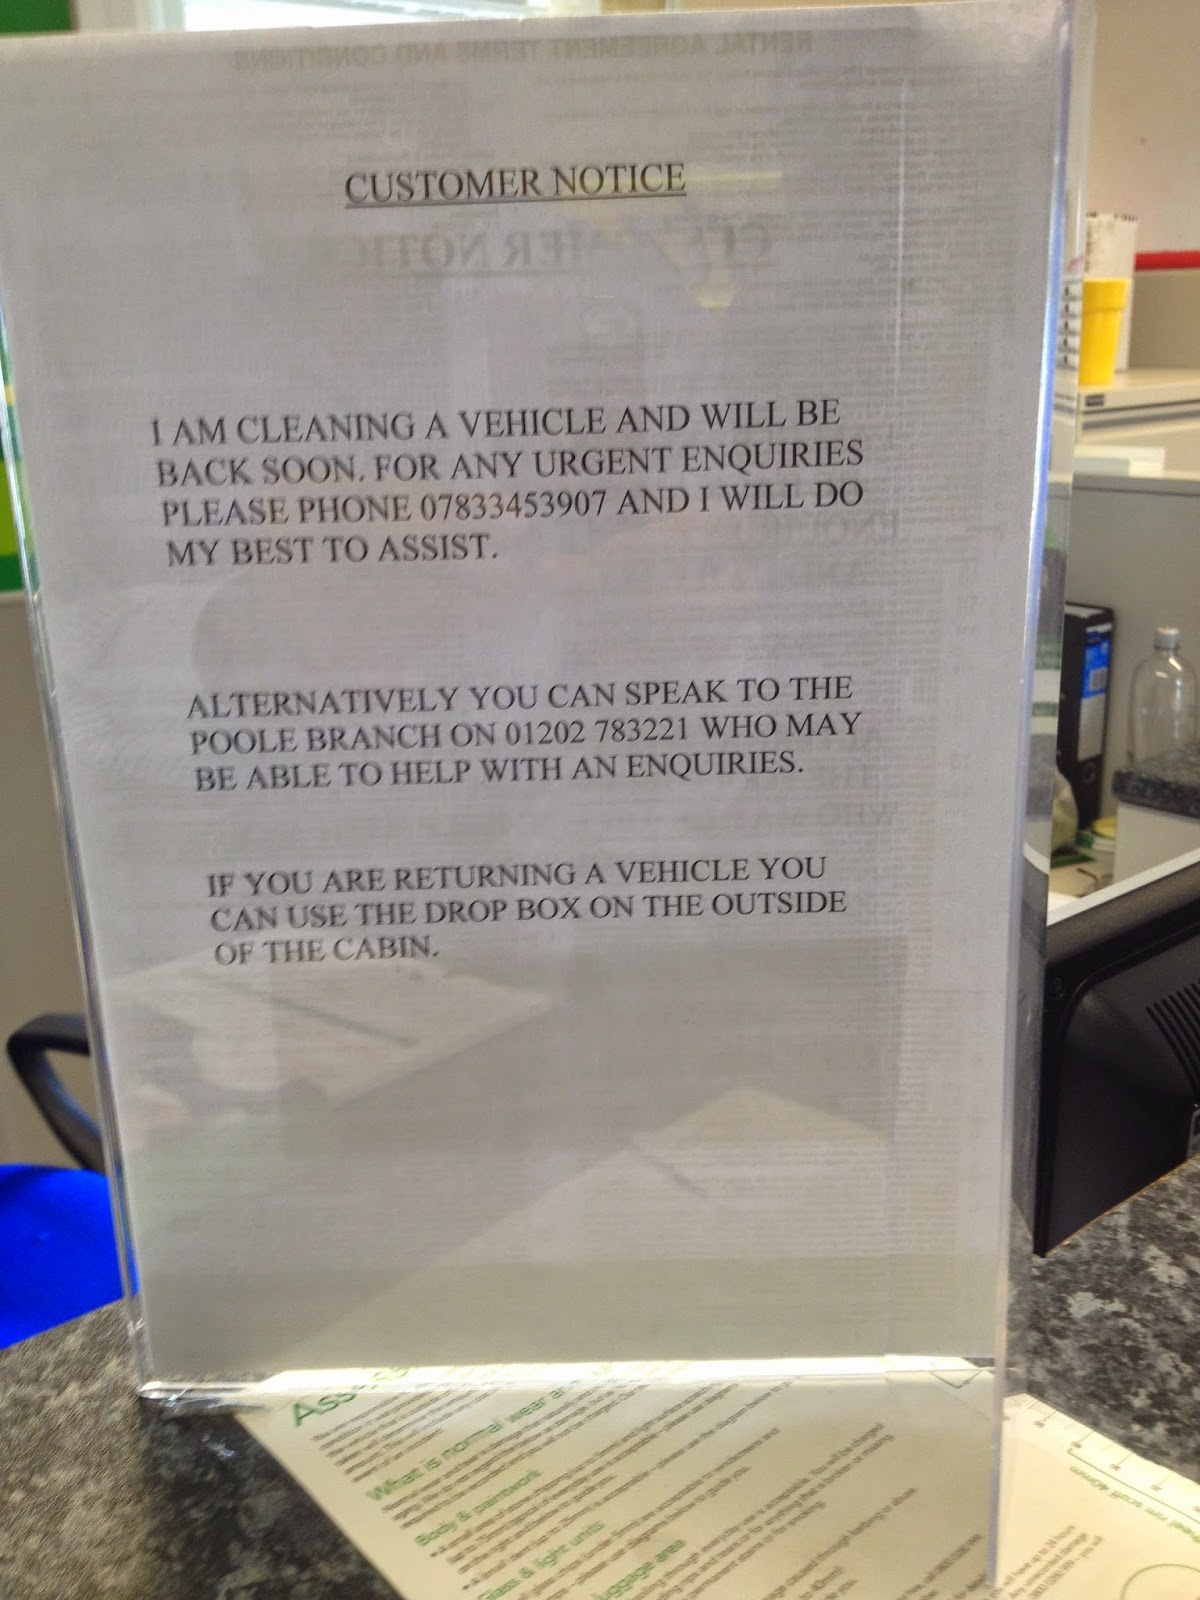 Europcar at Bournemouth Airport had no staff at their desk